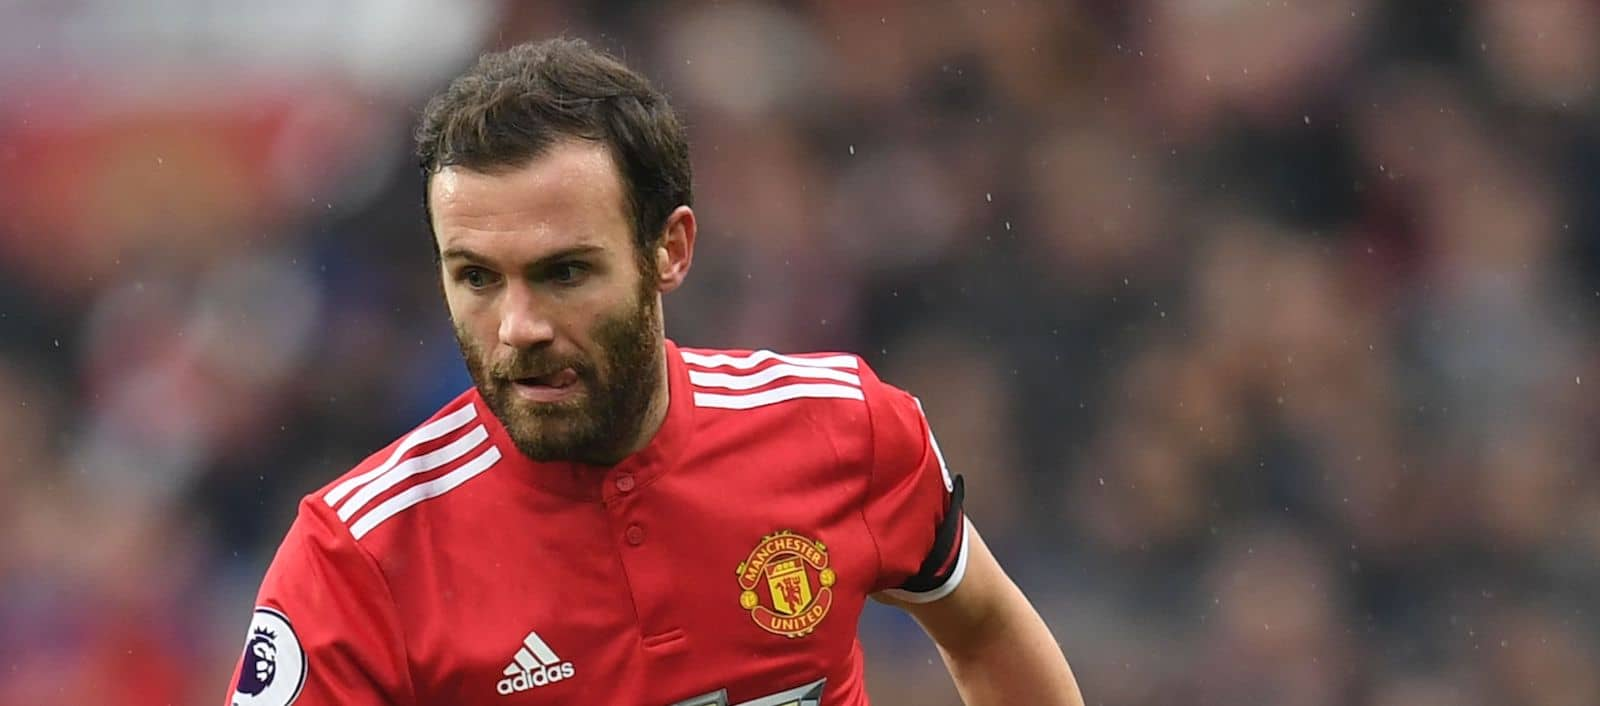 Manchester United fans frustrated with Juan Mata's performance vs West Brom